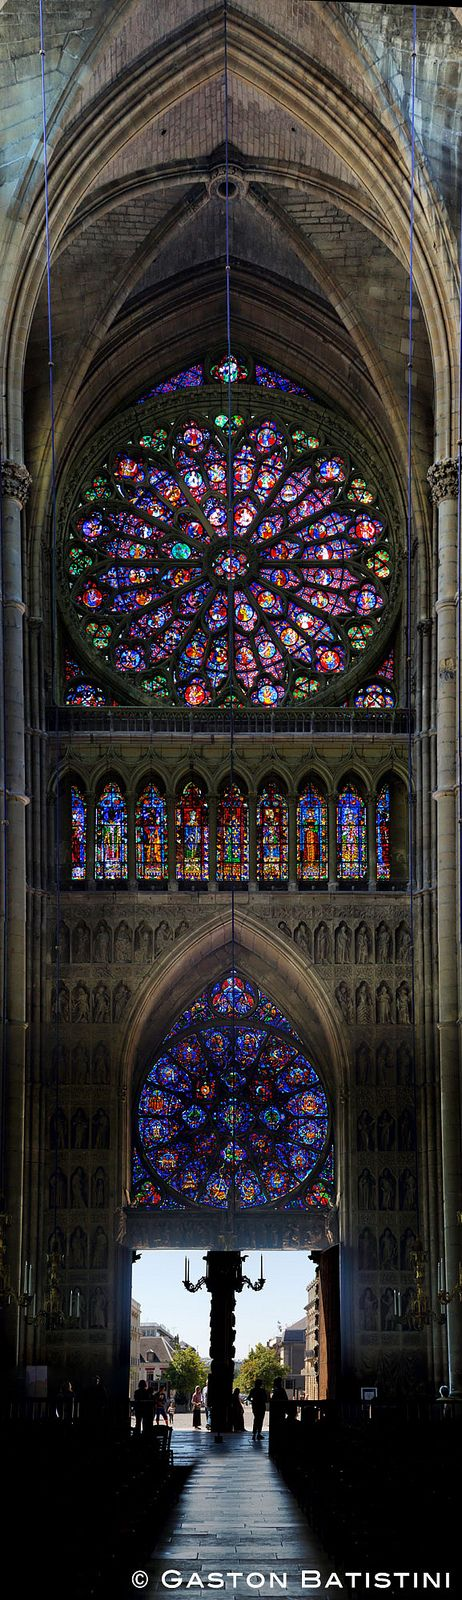 Cathédrale Notre-Dame de Reims, Champagne Ardenne, France | by Gaston Batistini (6 million+ views thanks to all !